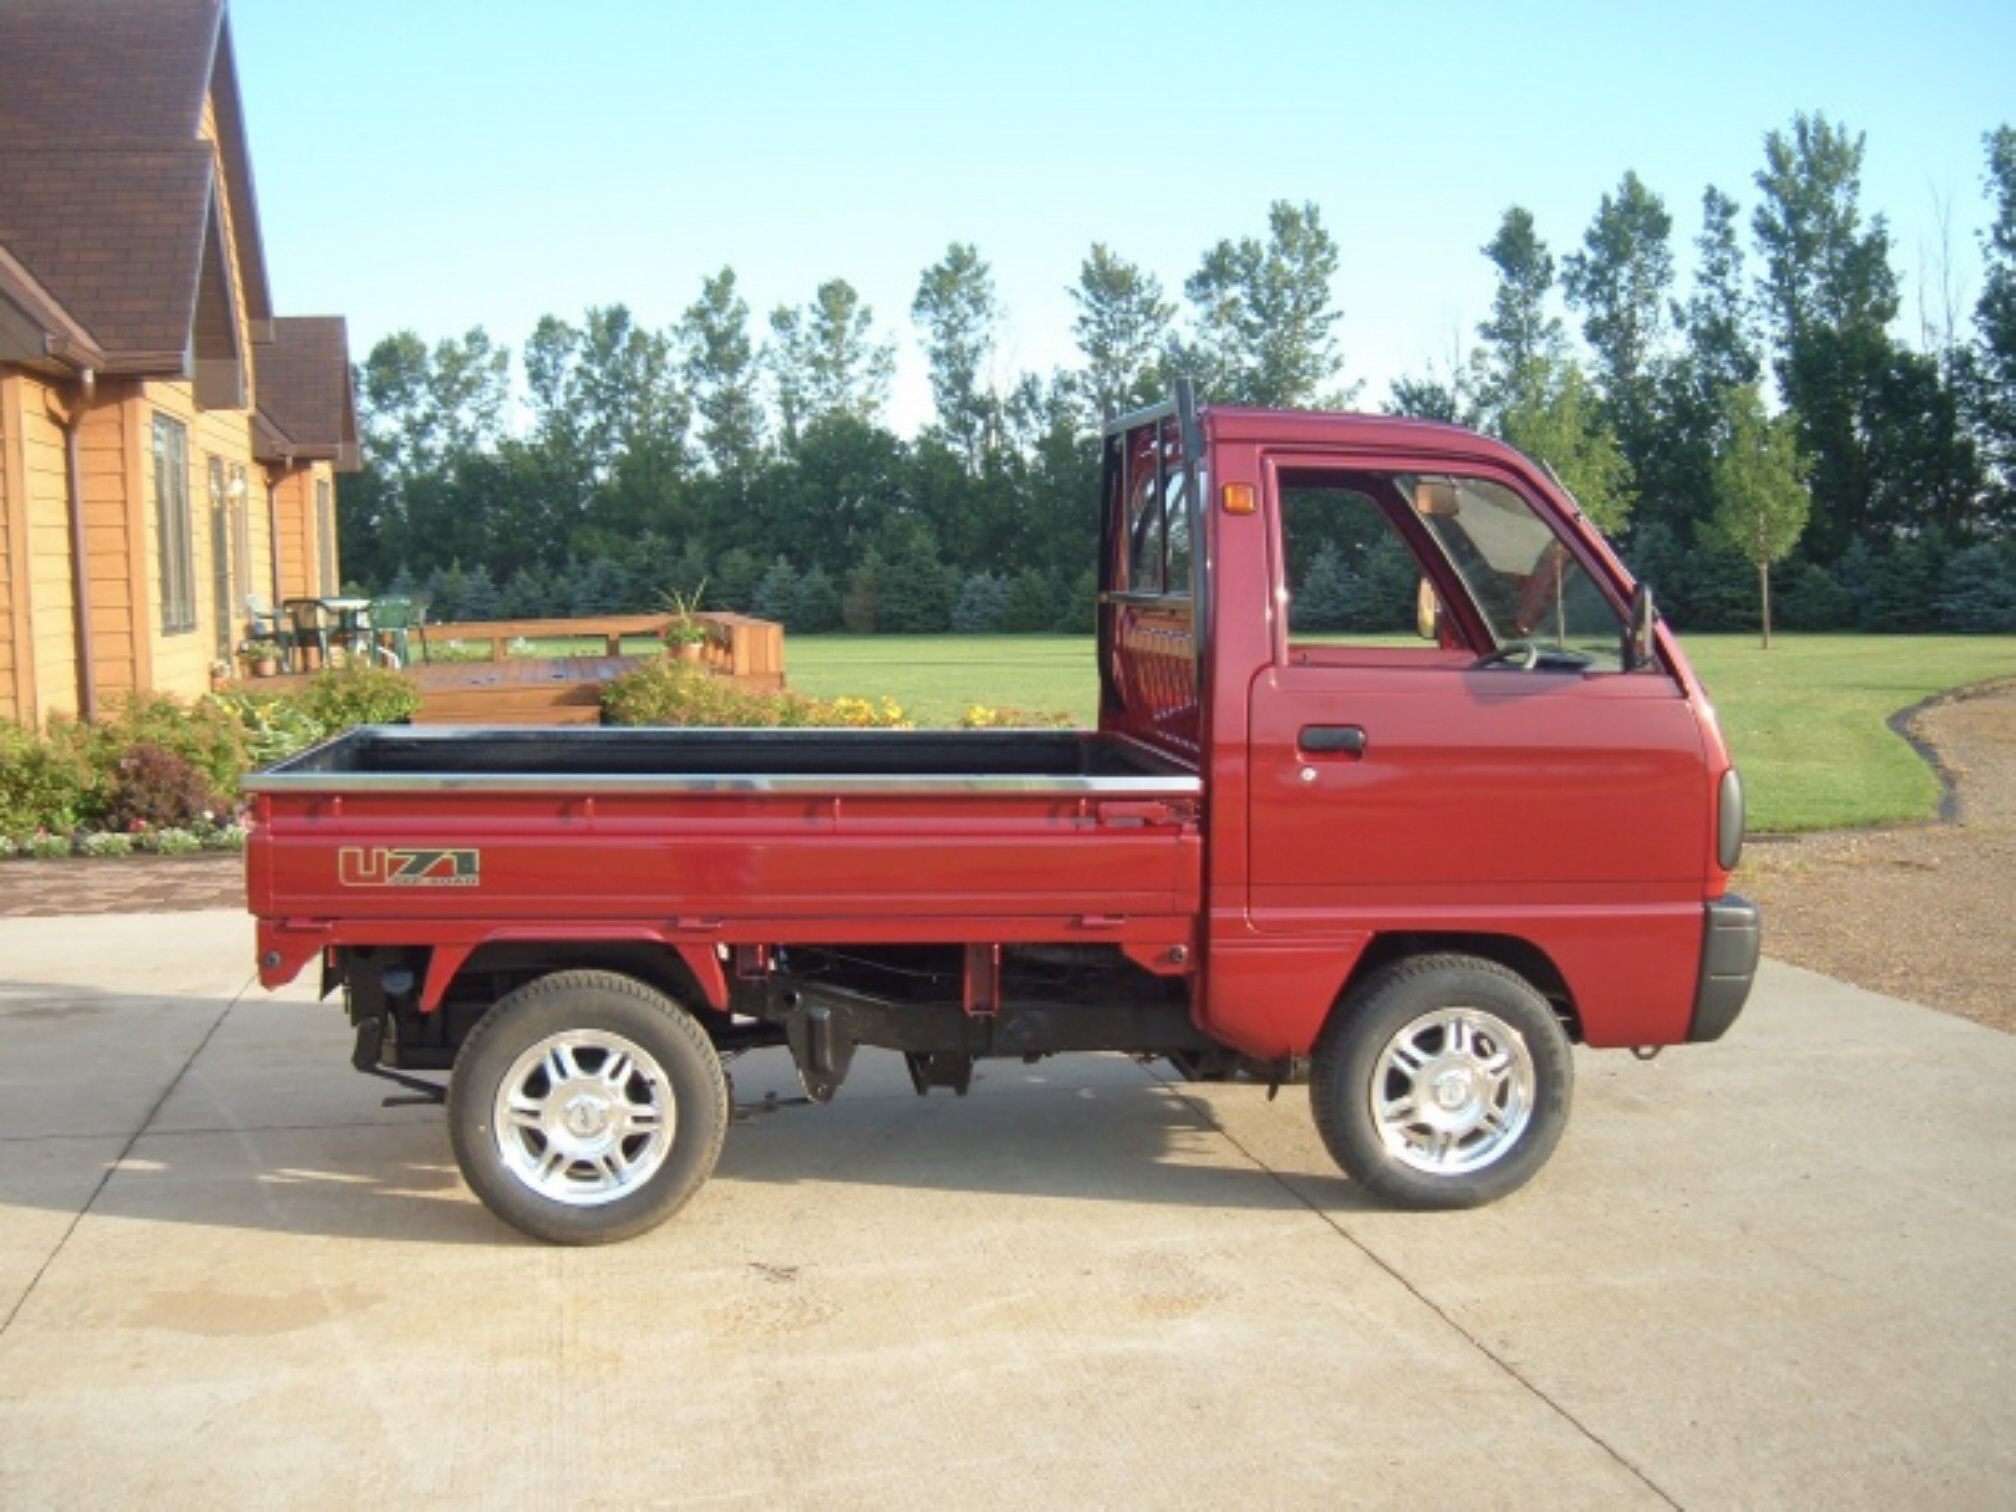 Used Trucks For Sale In Texas >> Dealing in Used Japanese Mini Trucks - Ulmer Farm Service, LLC